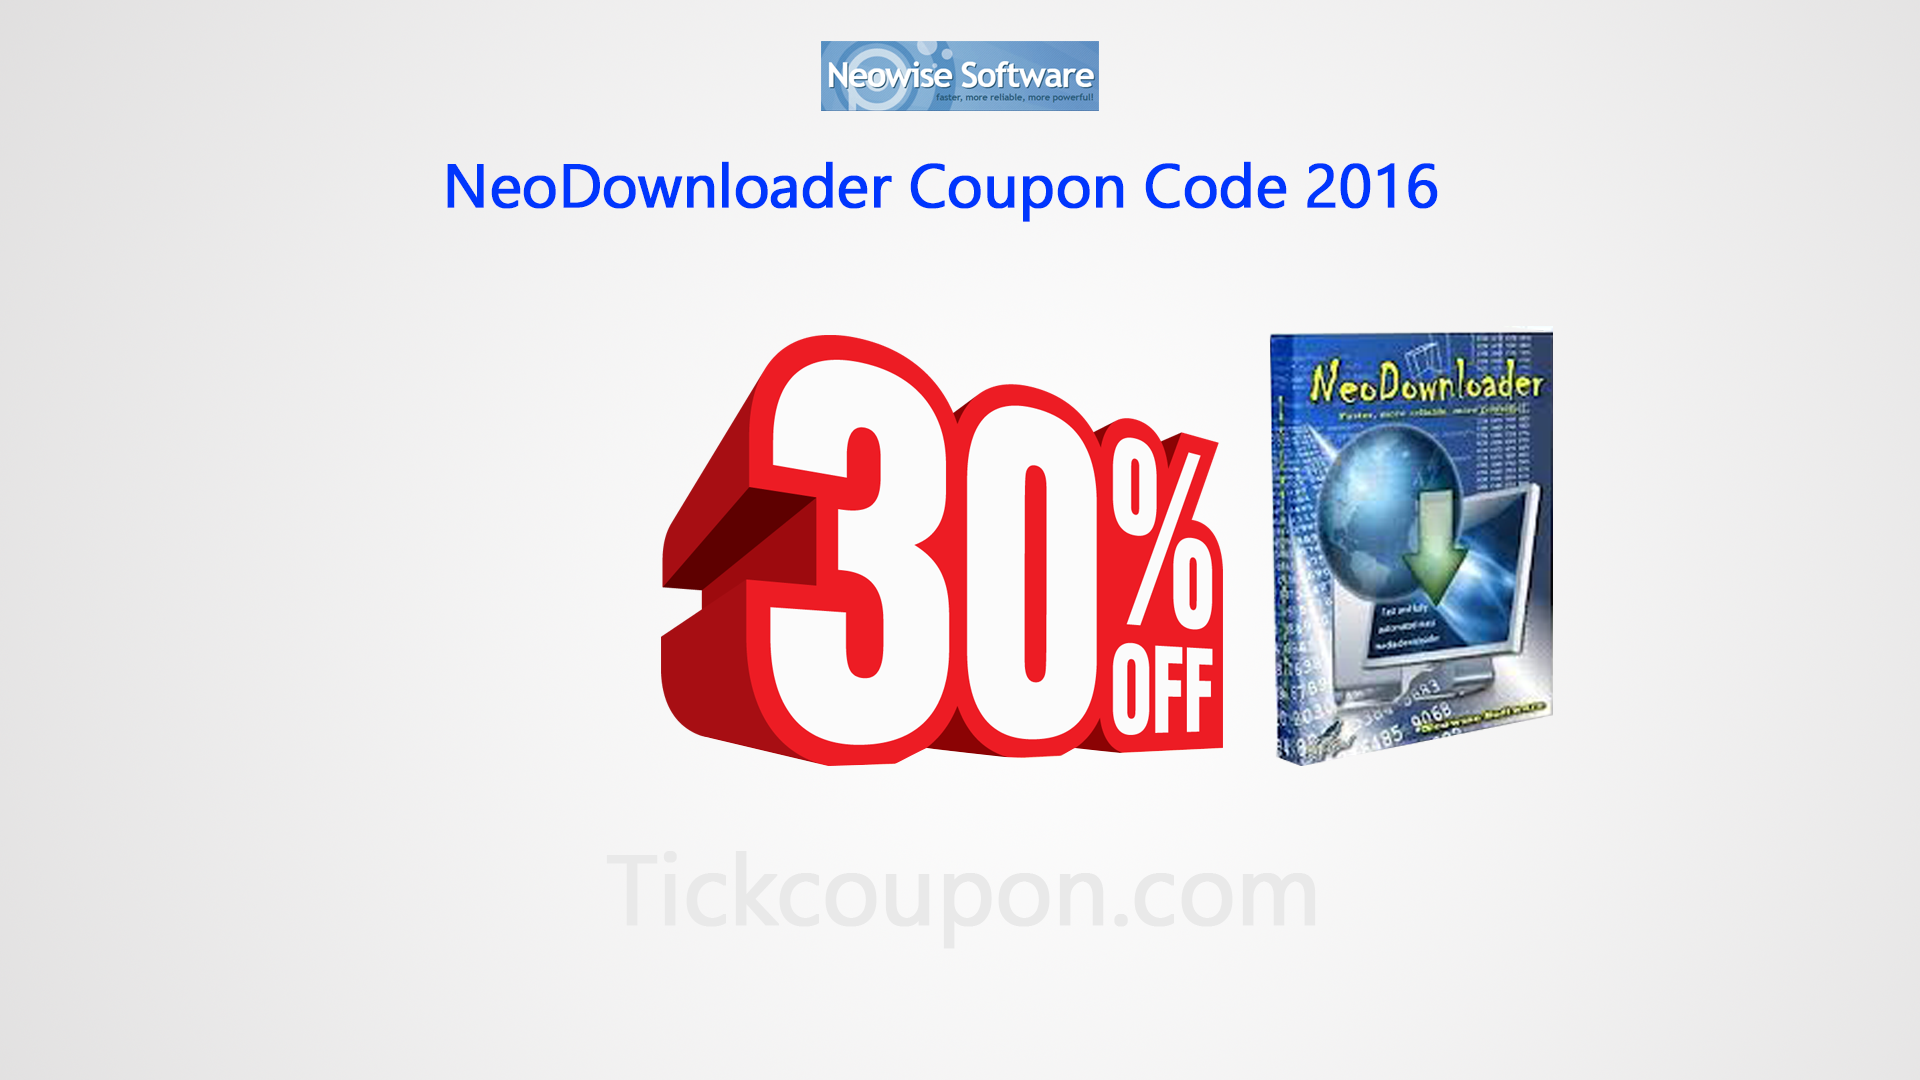 Get 30 Off Neodownloader Coupon Code Now Http Tickcoupon Com Coupons Get 30 Off Neodownloader Coupon Code Now Coding Coupon Codes Coupons